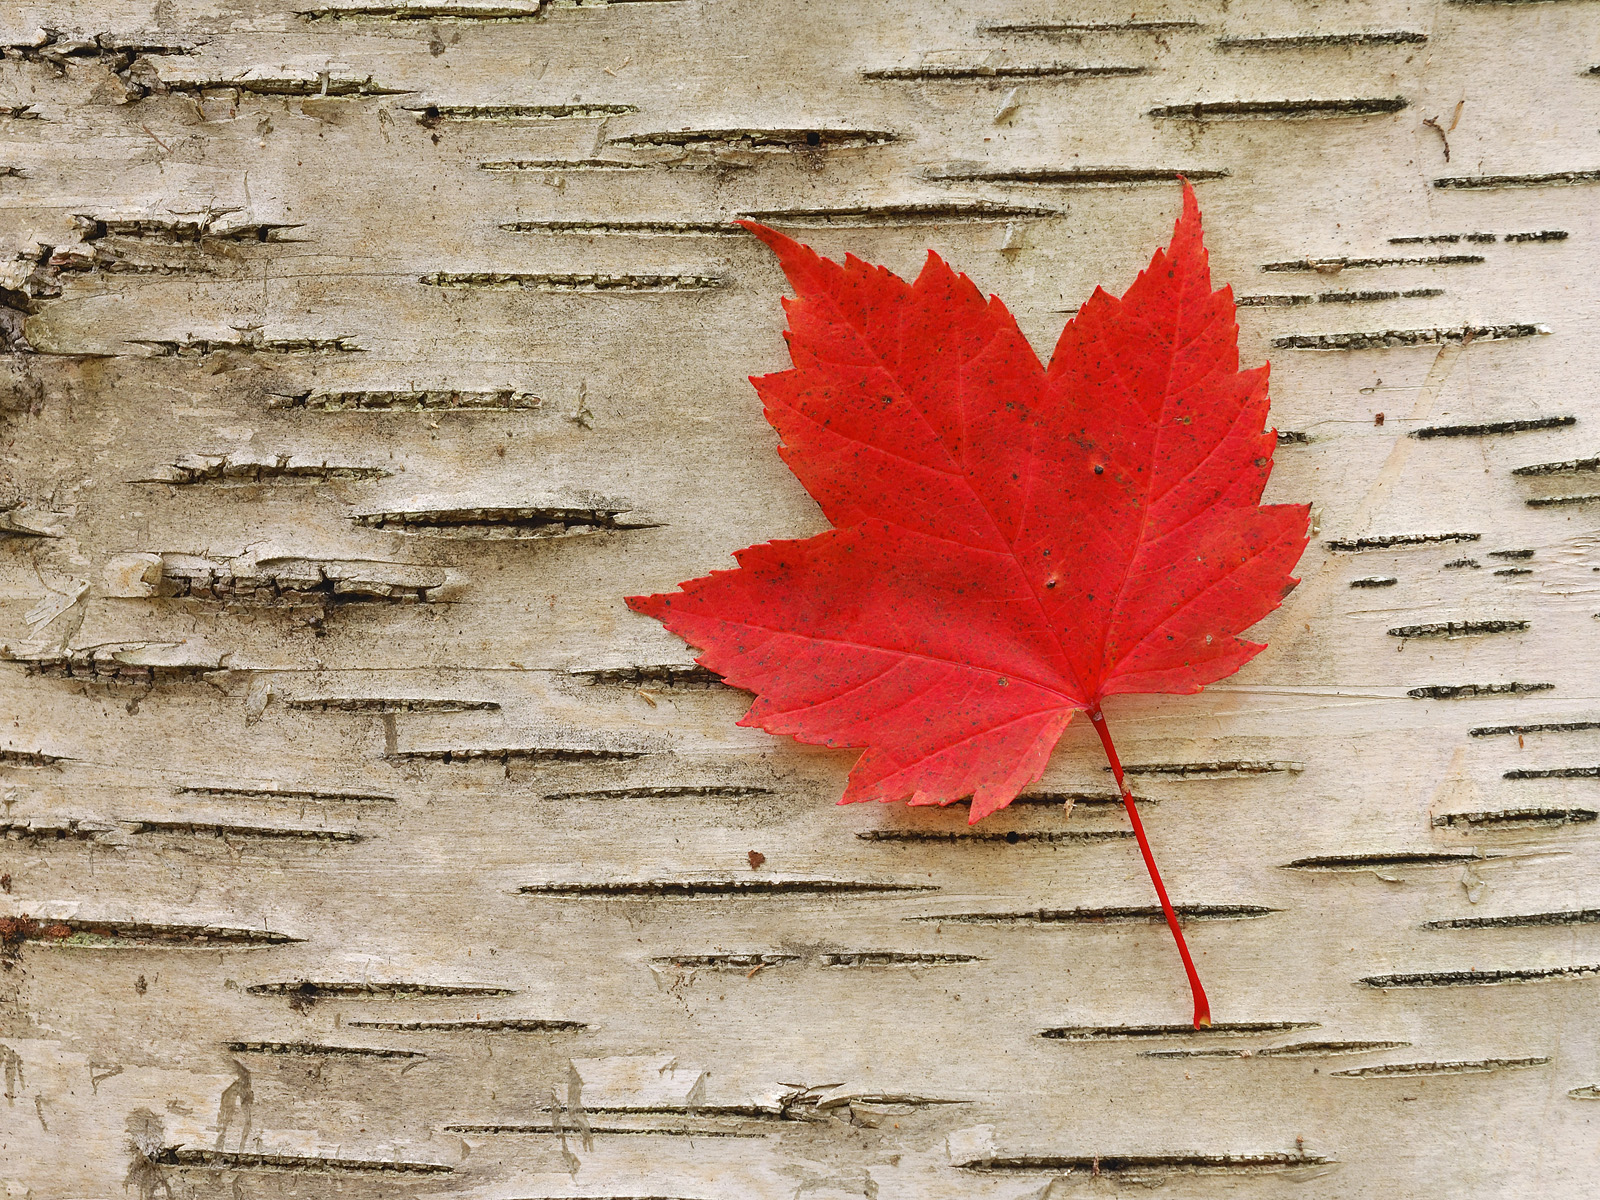 Cute Fall Leaves Wallpaper Maple Leaf Image Wallpaper High Definition High